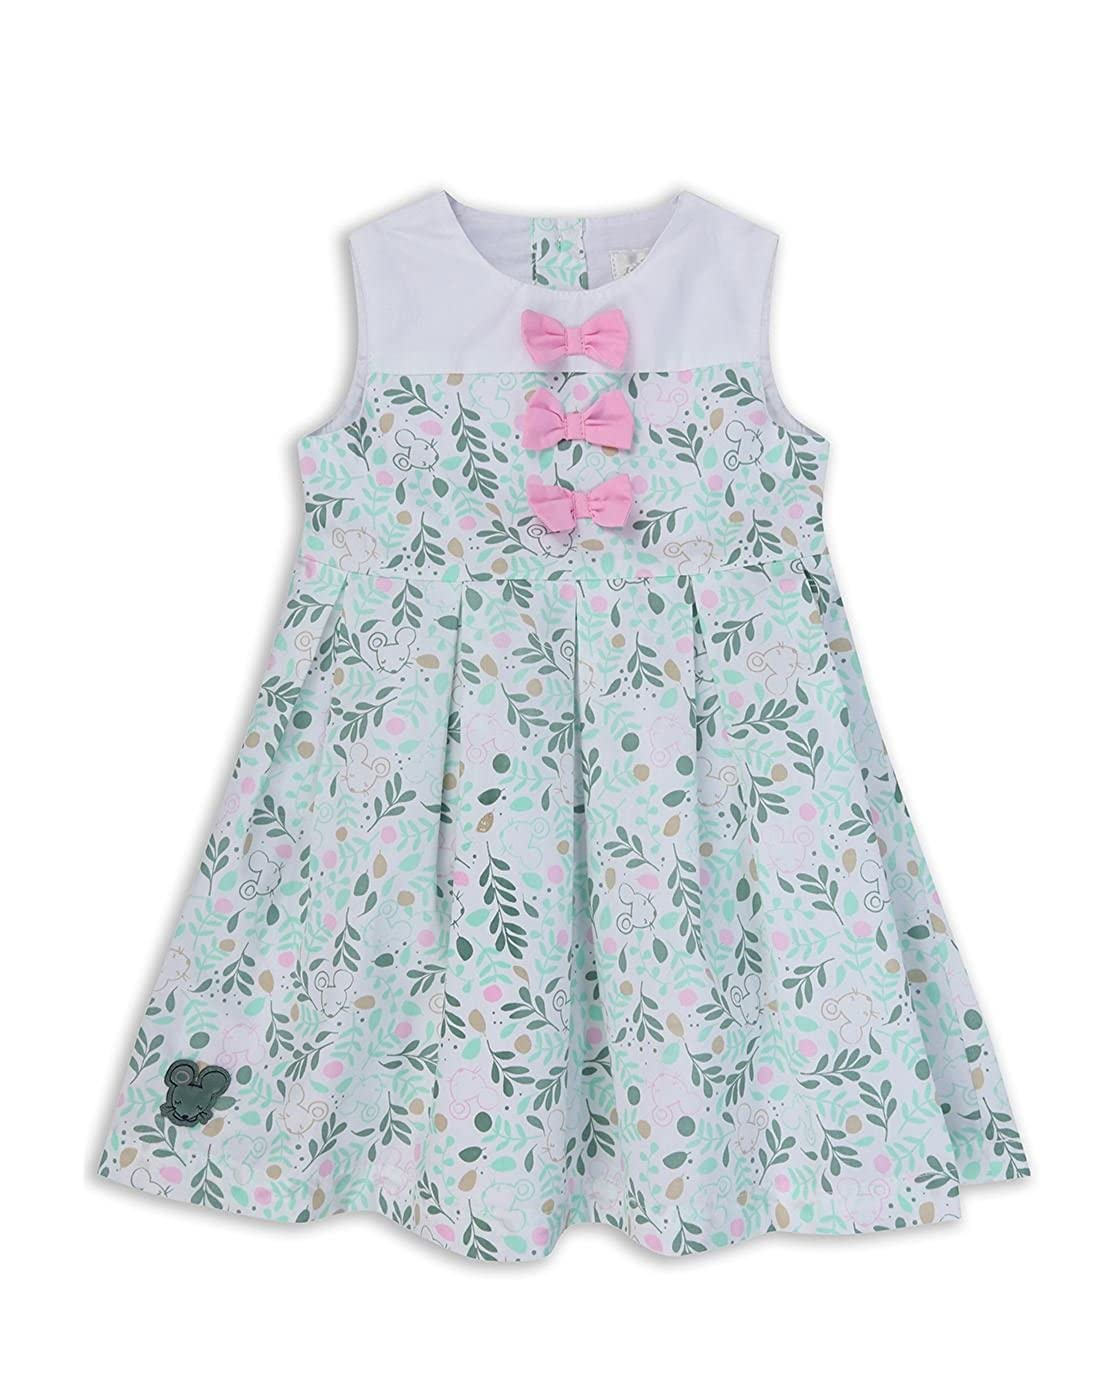 The Essential One Baby Kids Girls - Tropical Print Dress - Green - EOT351